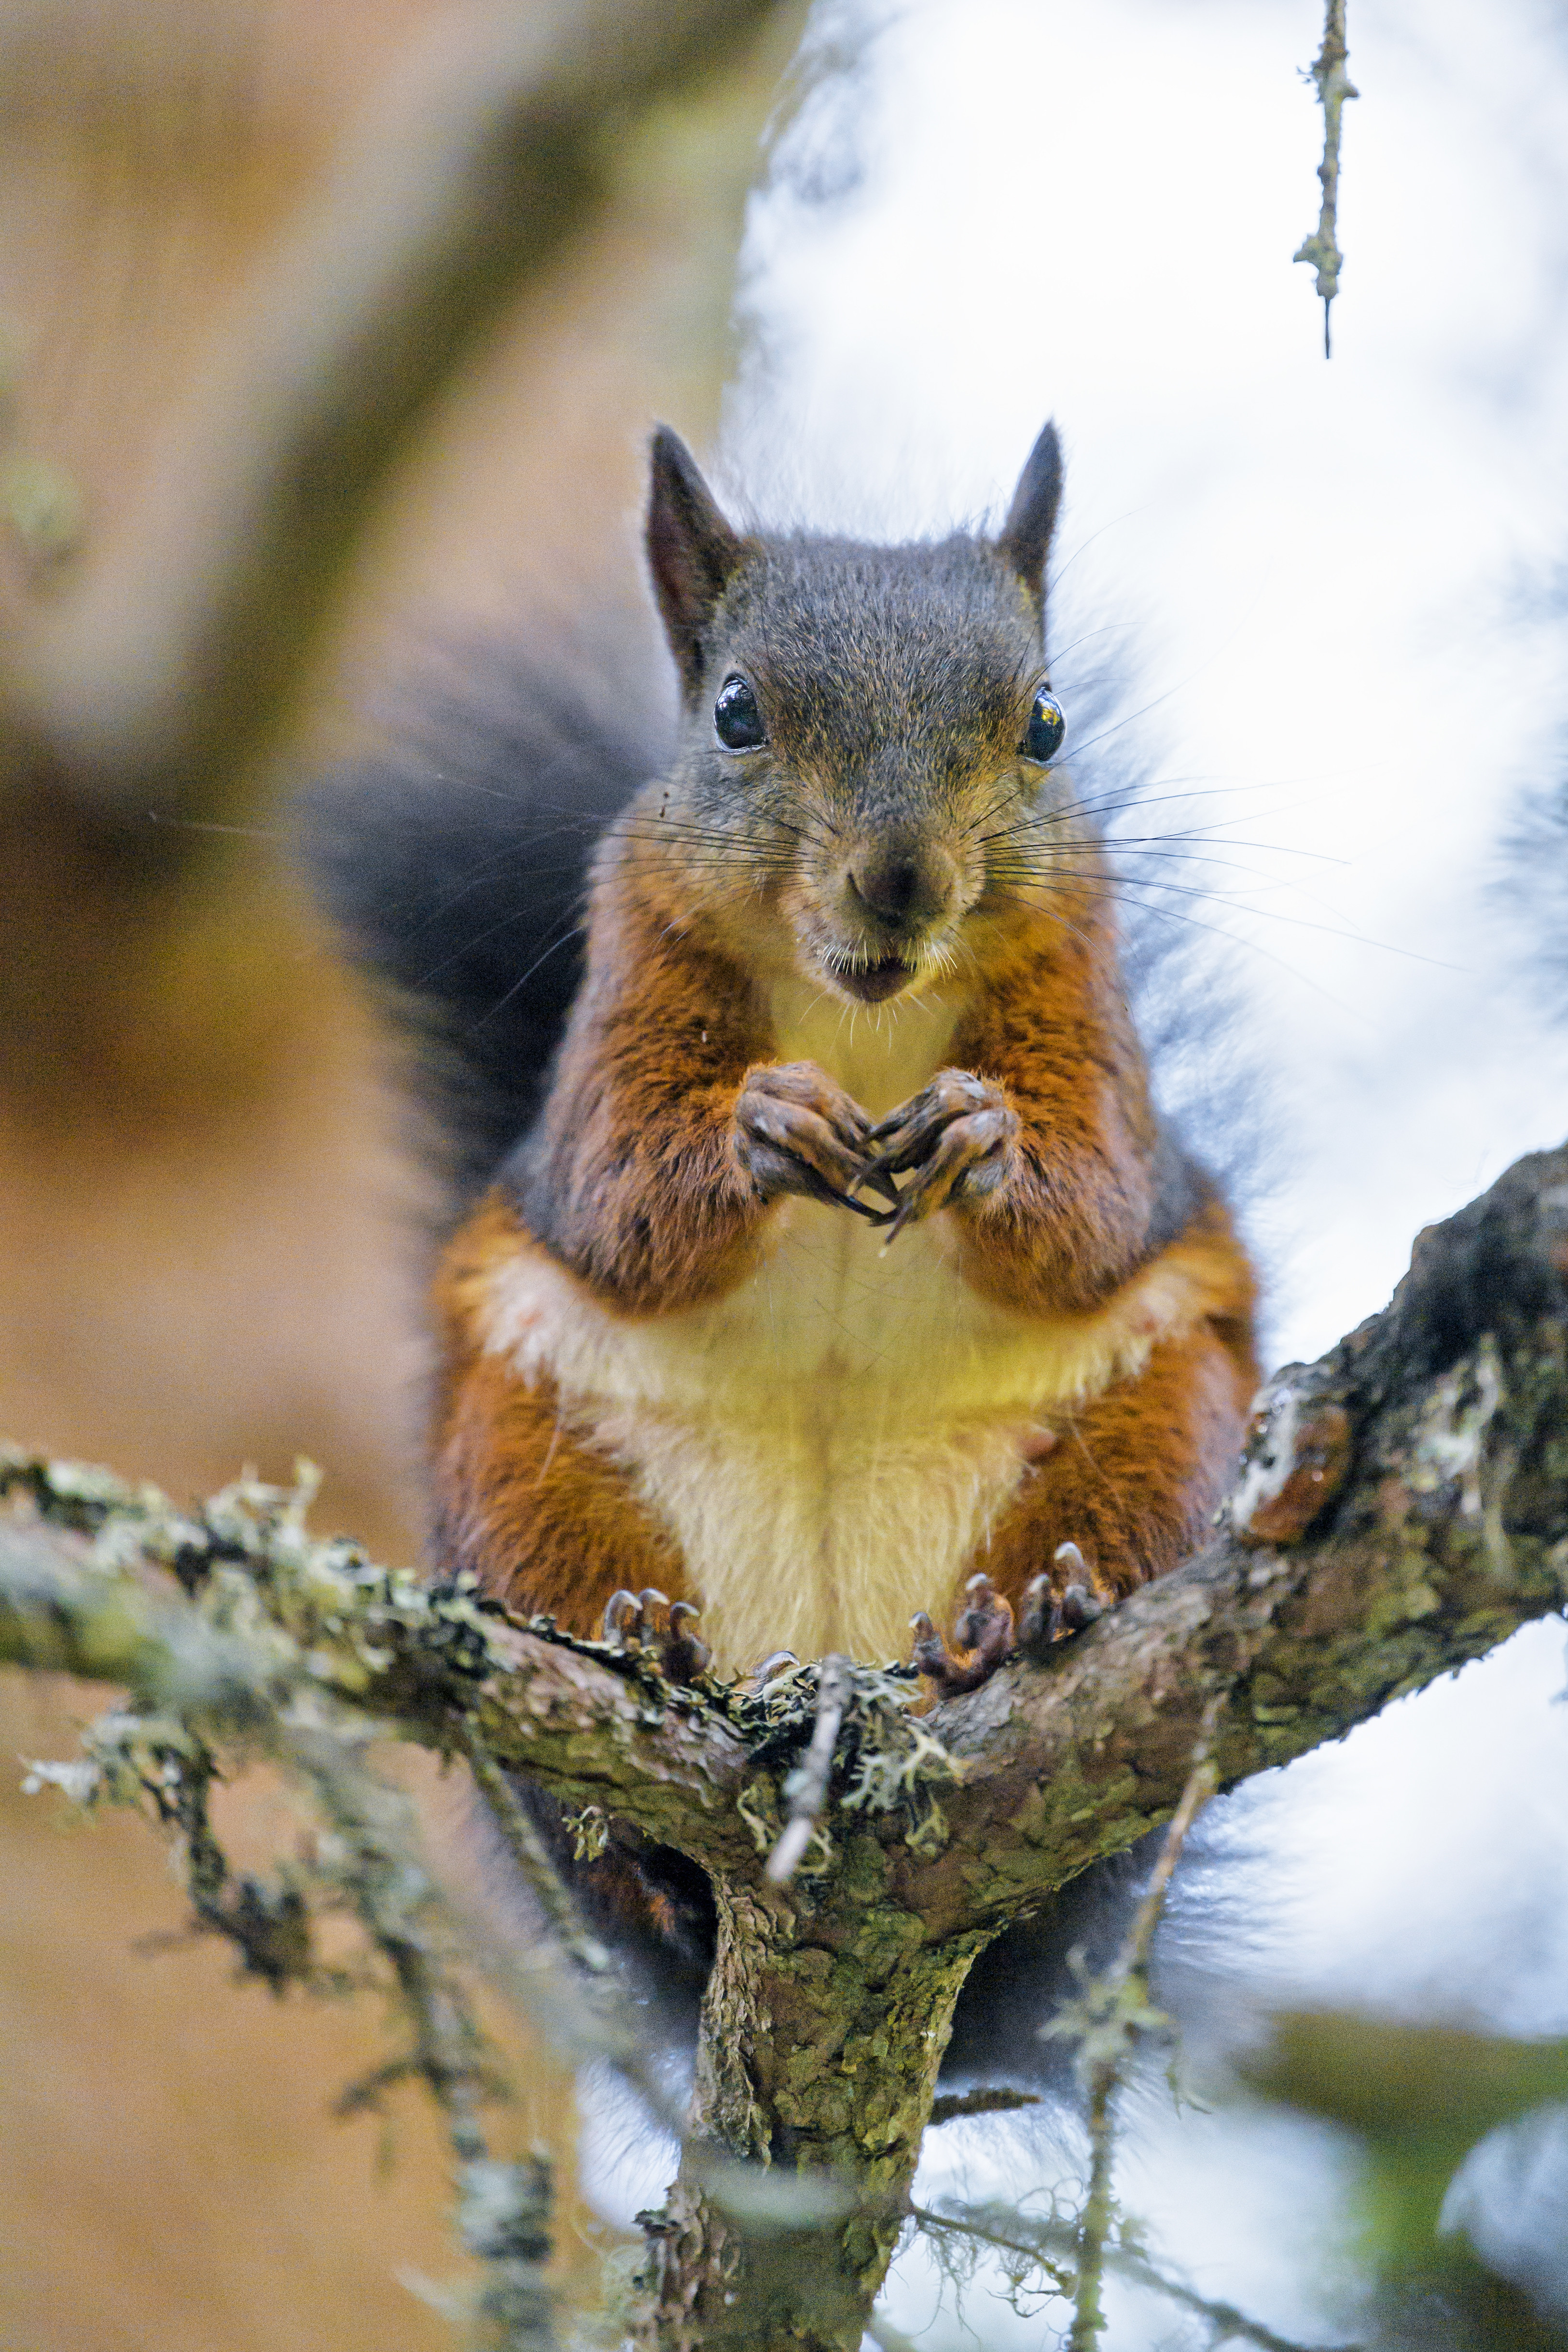 80611 download wallpaper Animals, Squirrel, Rodent, Animal, Wood, Tree screensavers and pictures for free